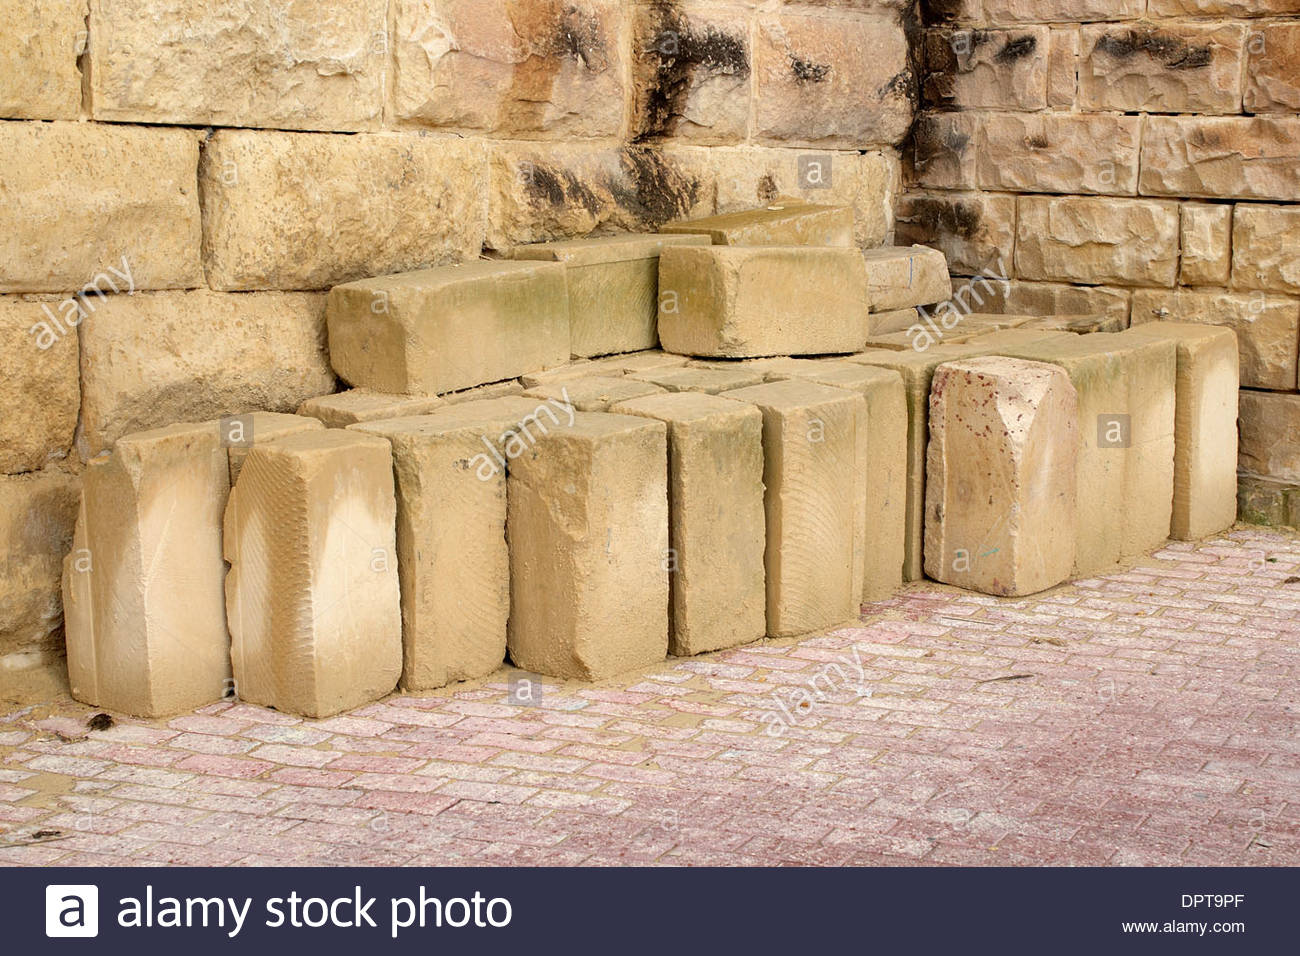 Sandstone Blocks Stock Photos & Sandstone Blocks Stock Images - Alamy